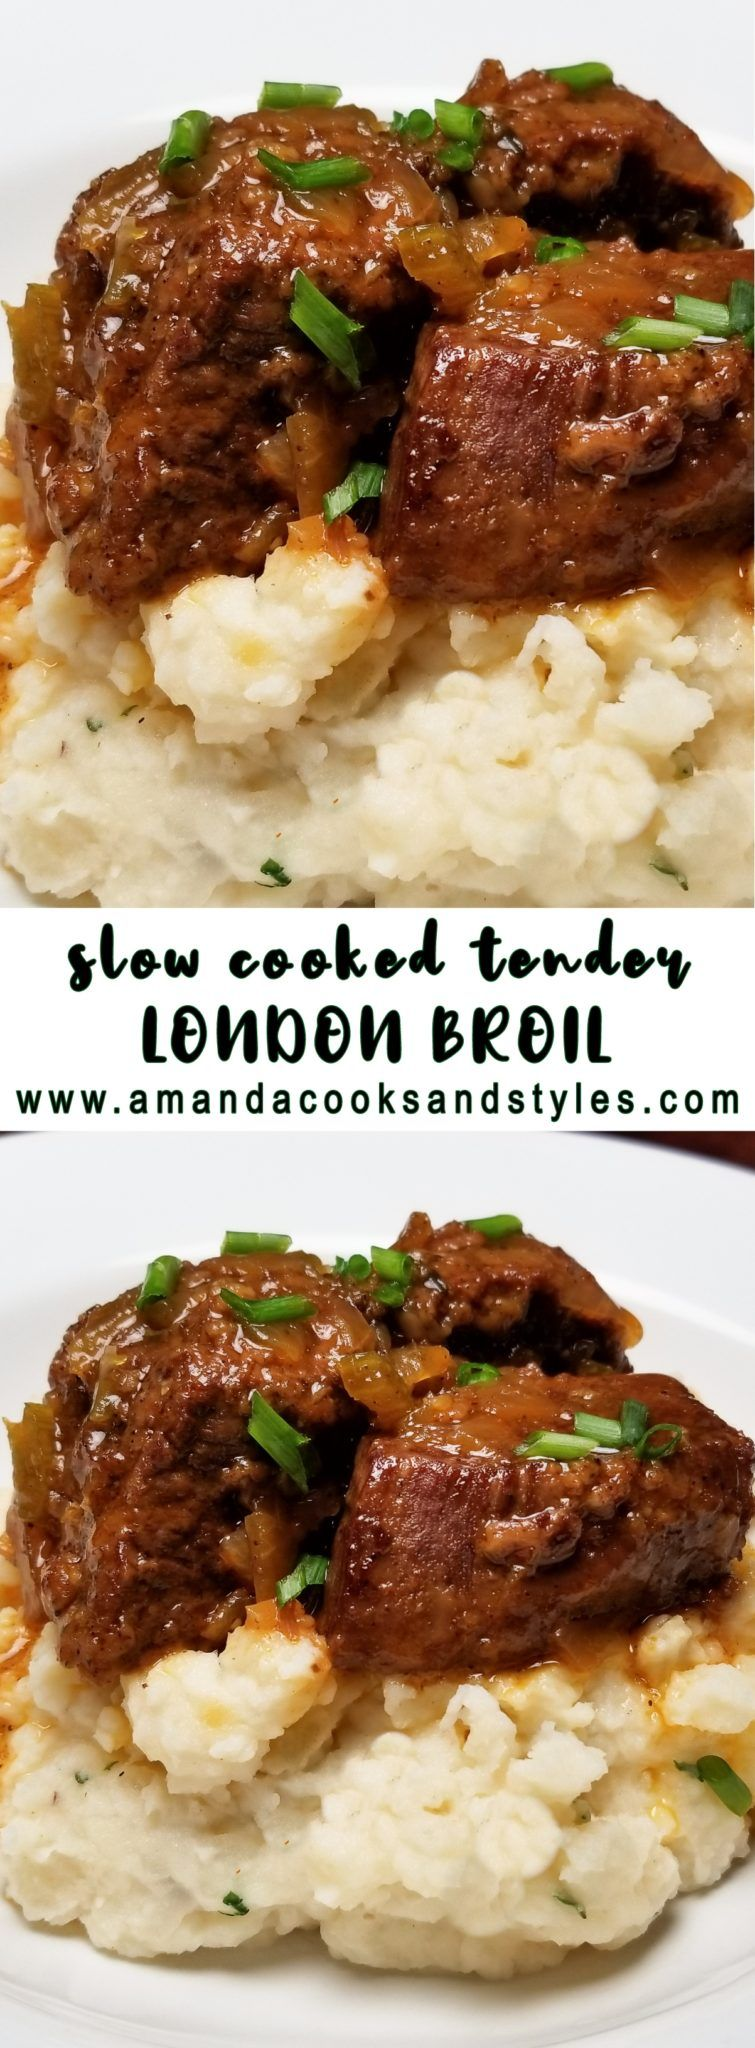 Slow Cooked Tender London Broil